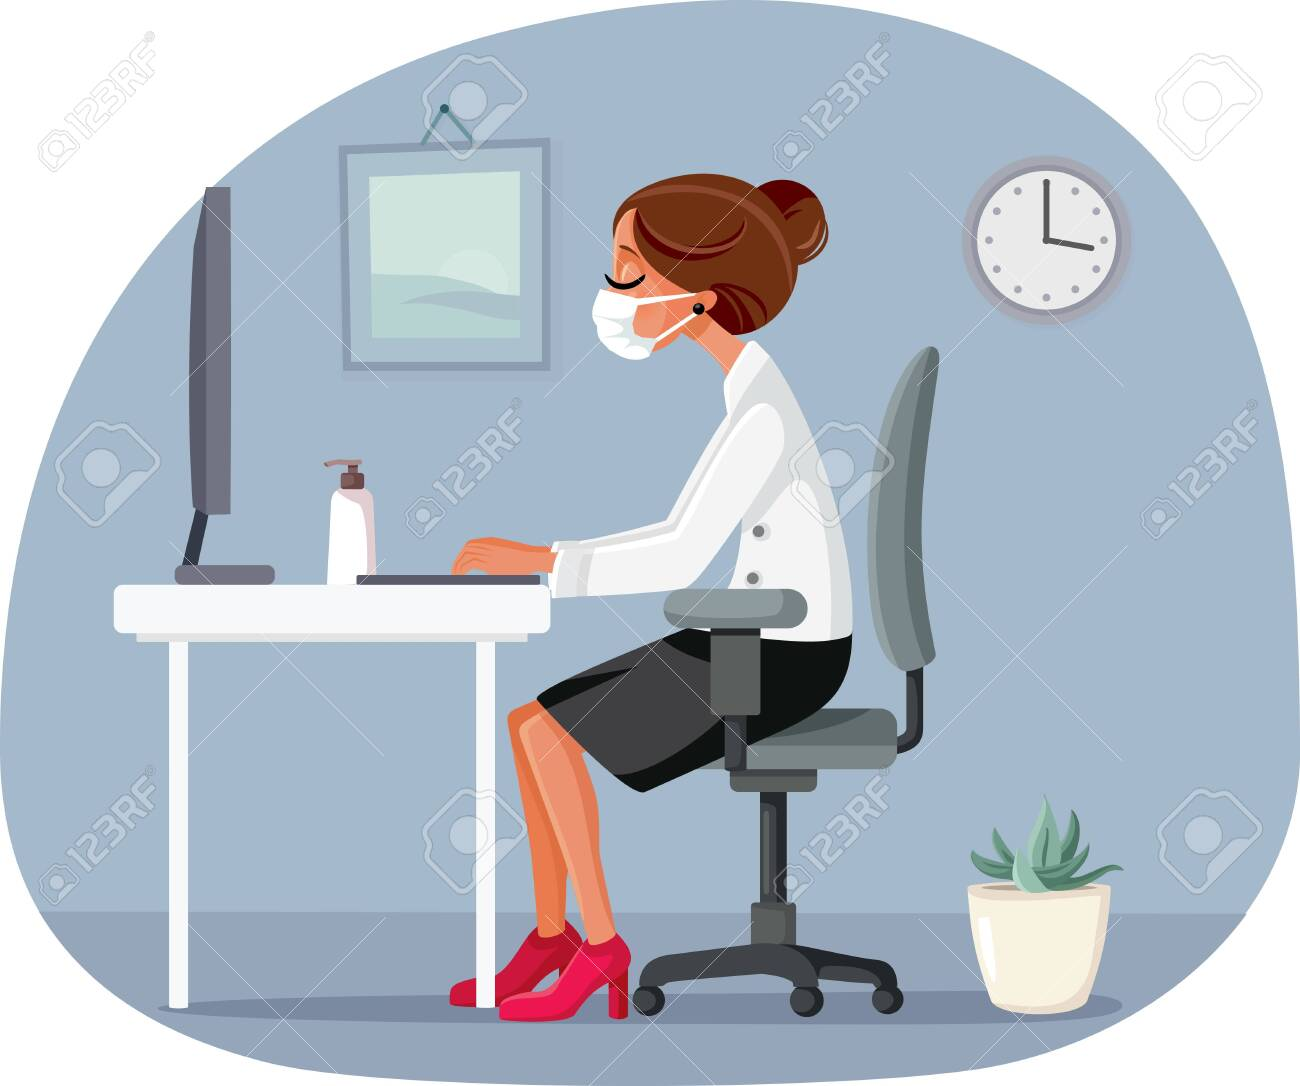 Woman Working in the Office Wearing Medical Face Mask - 150354660